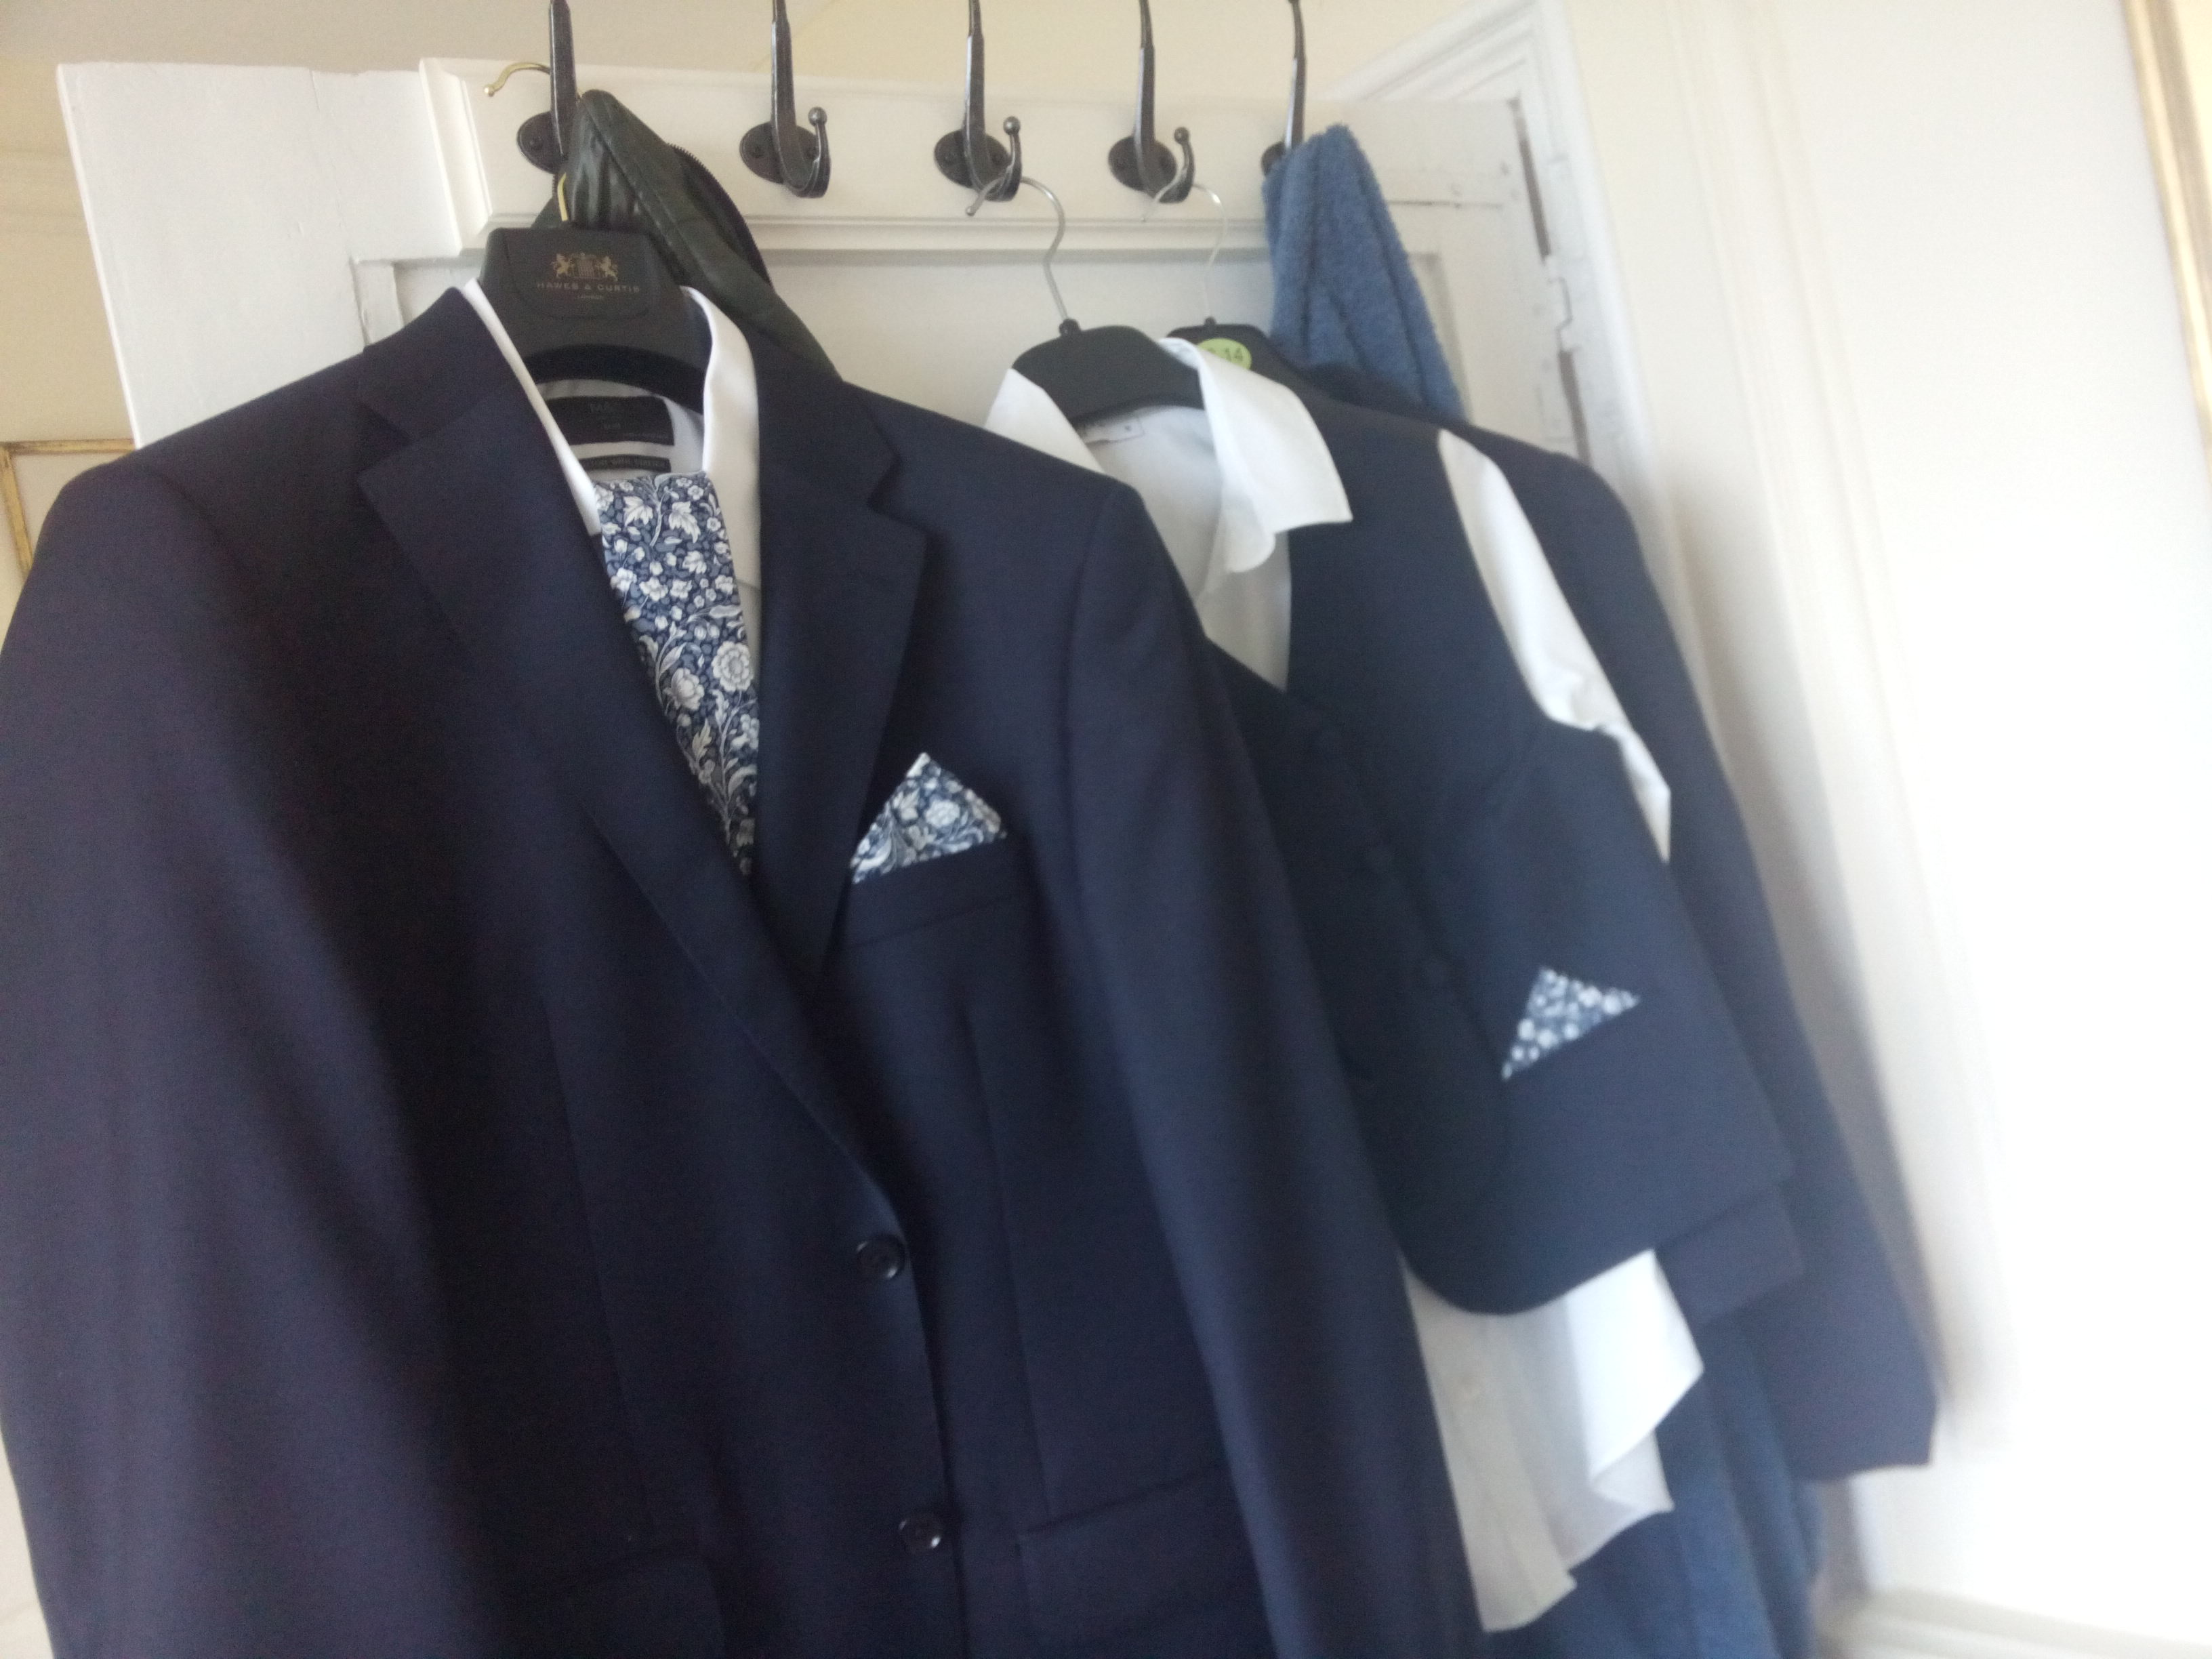 Two navy suit sets hanging on the back of a door